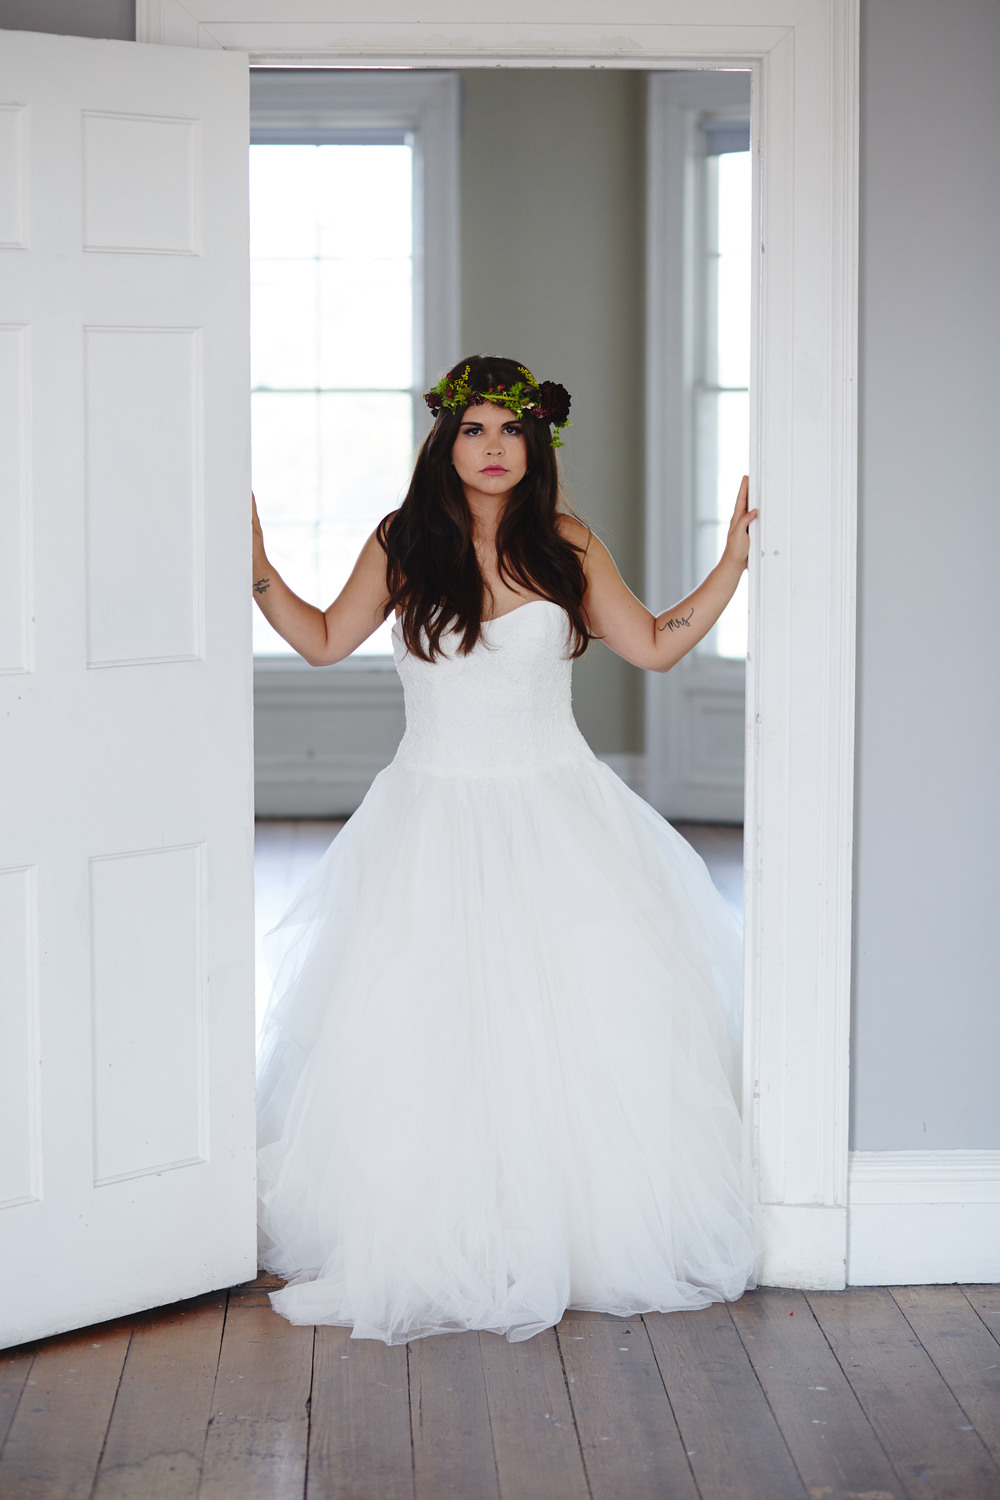 Styled_Session_Cherie_Bridal_Portraits_House_of_the_Bride 99.jpg